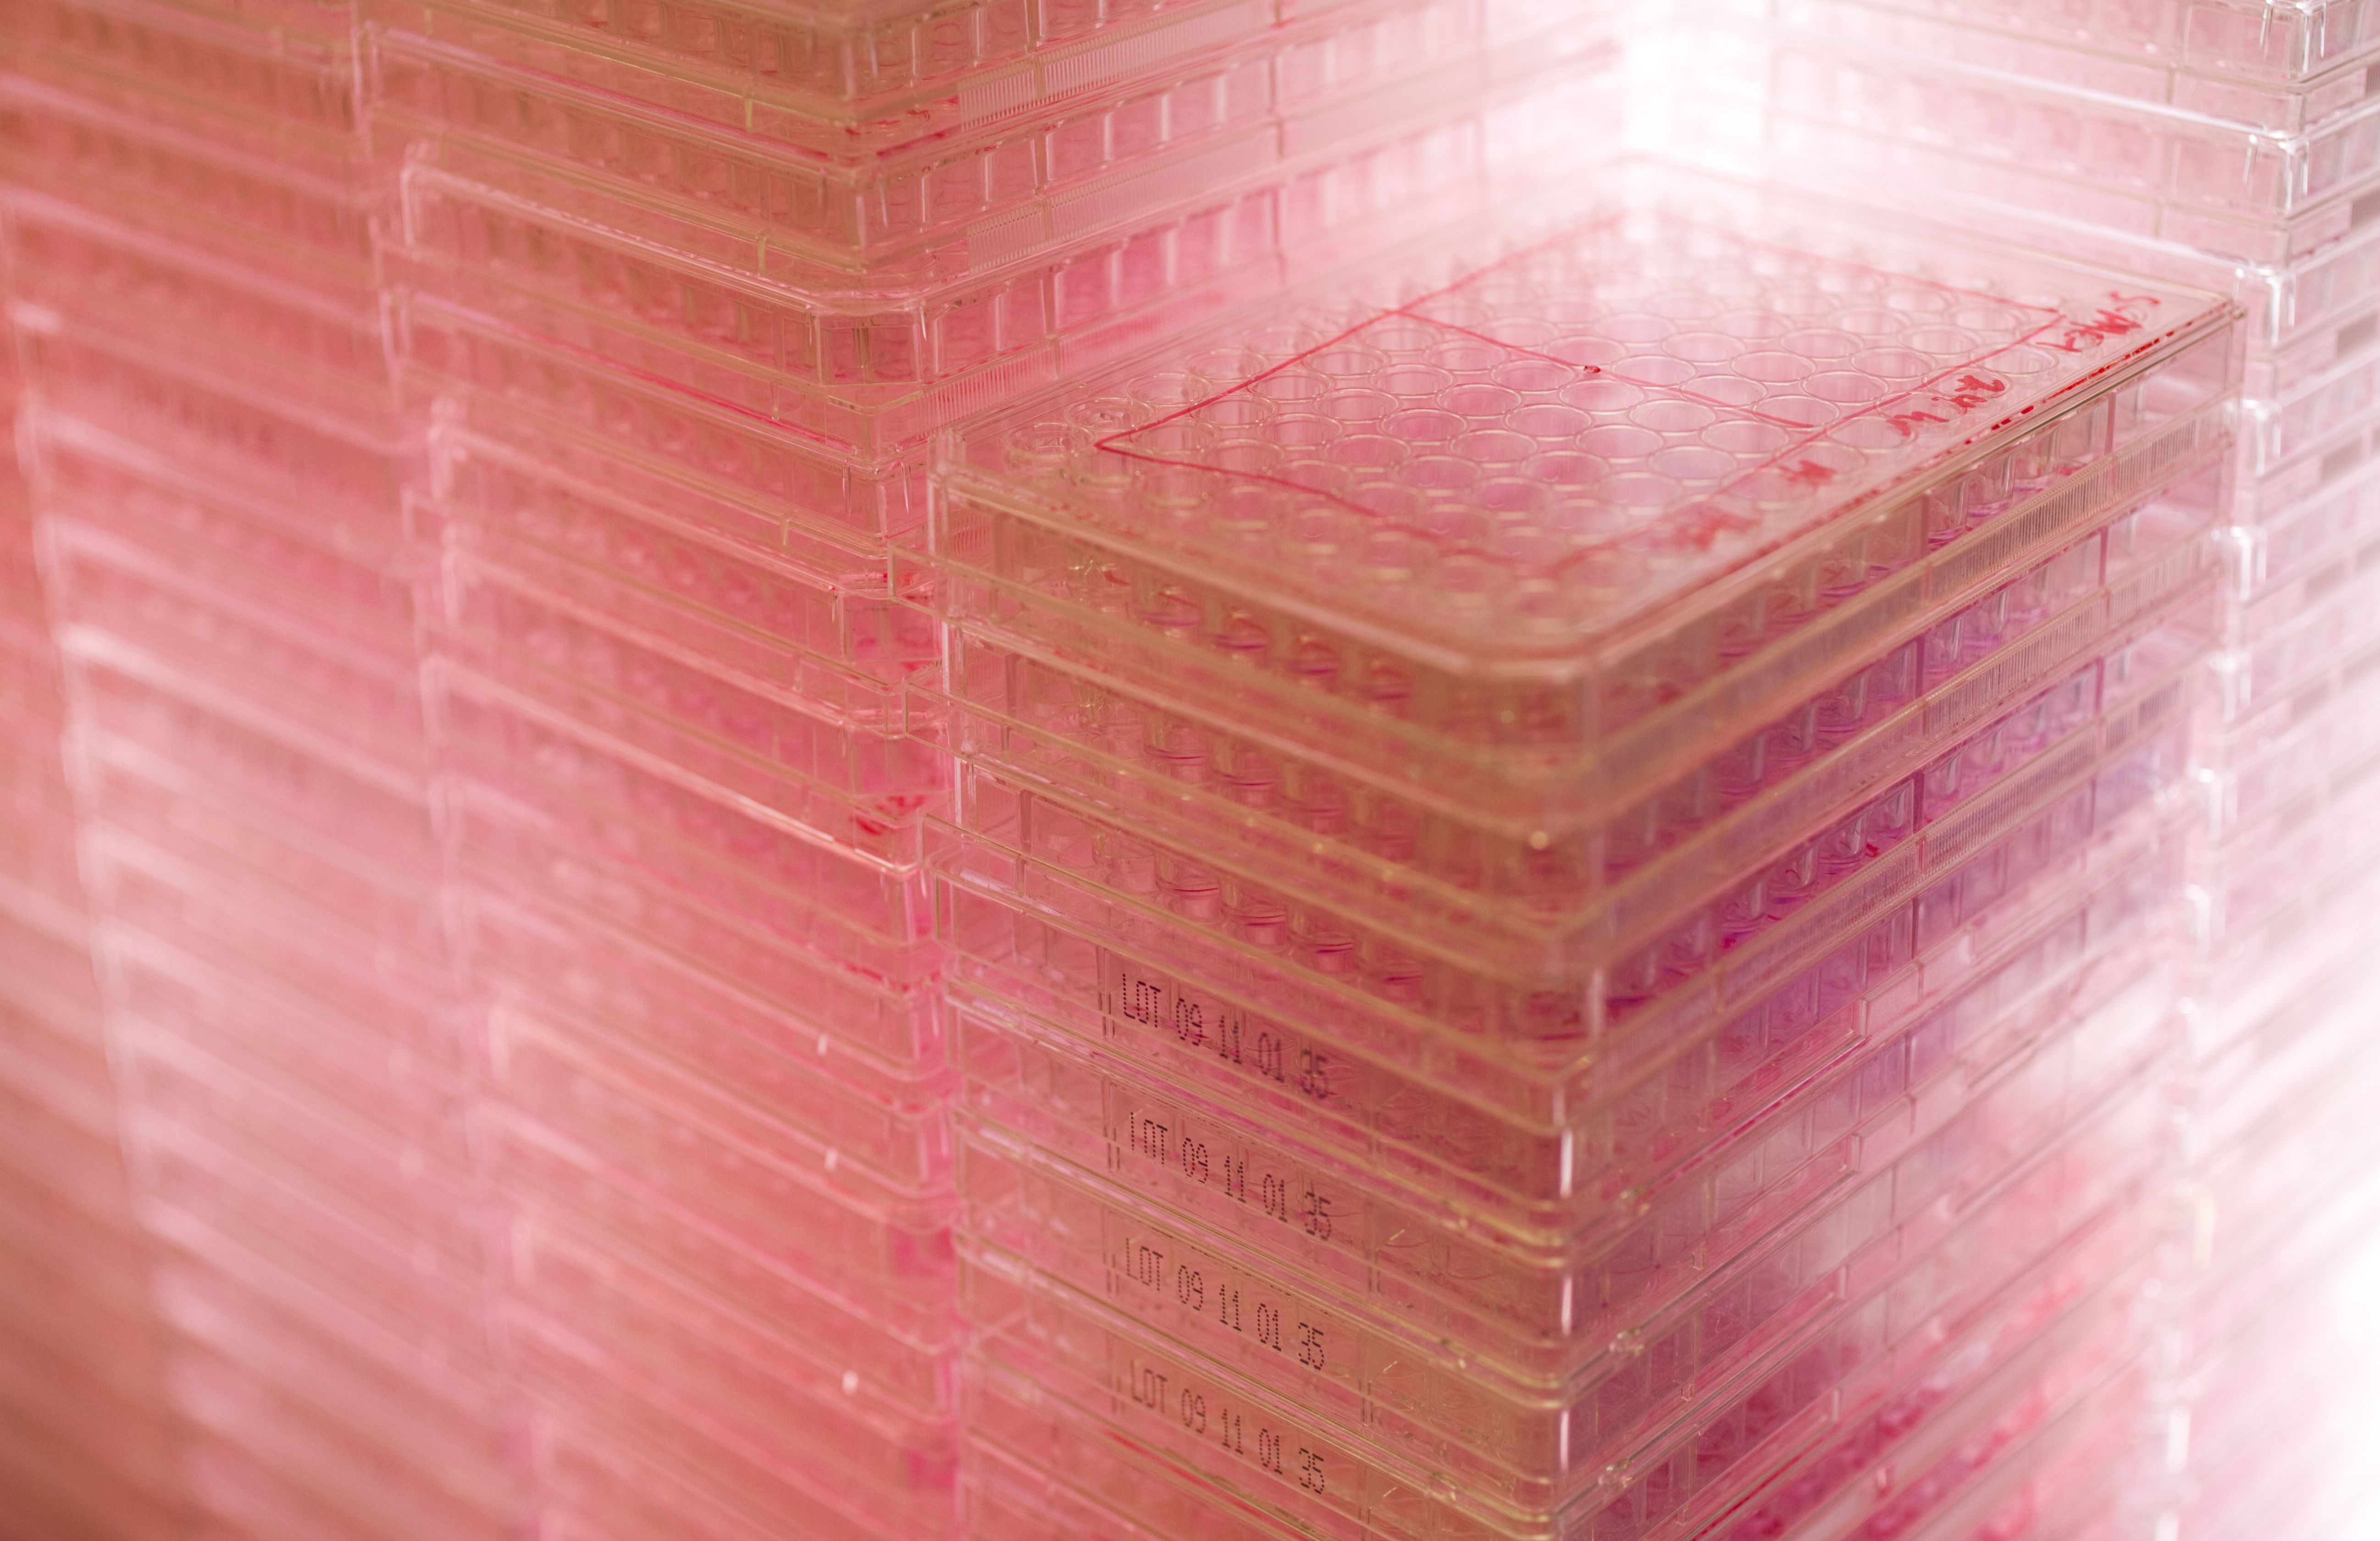 96-well trays filled with pink media